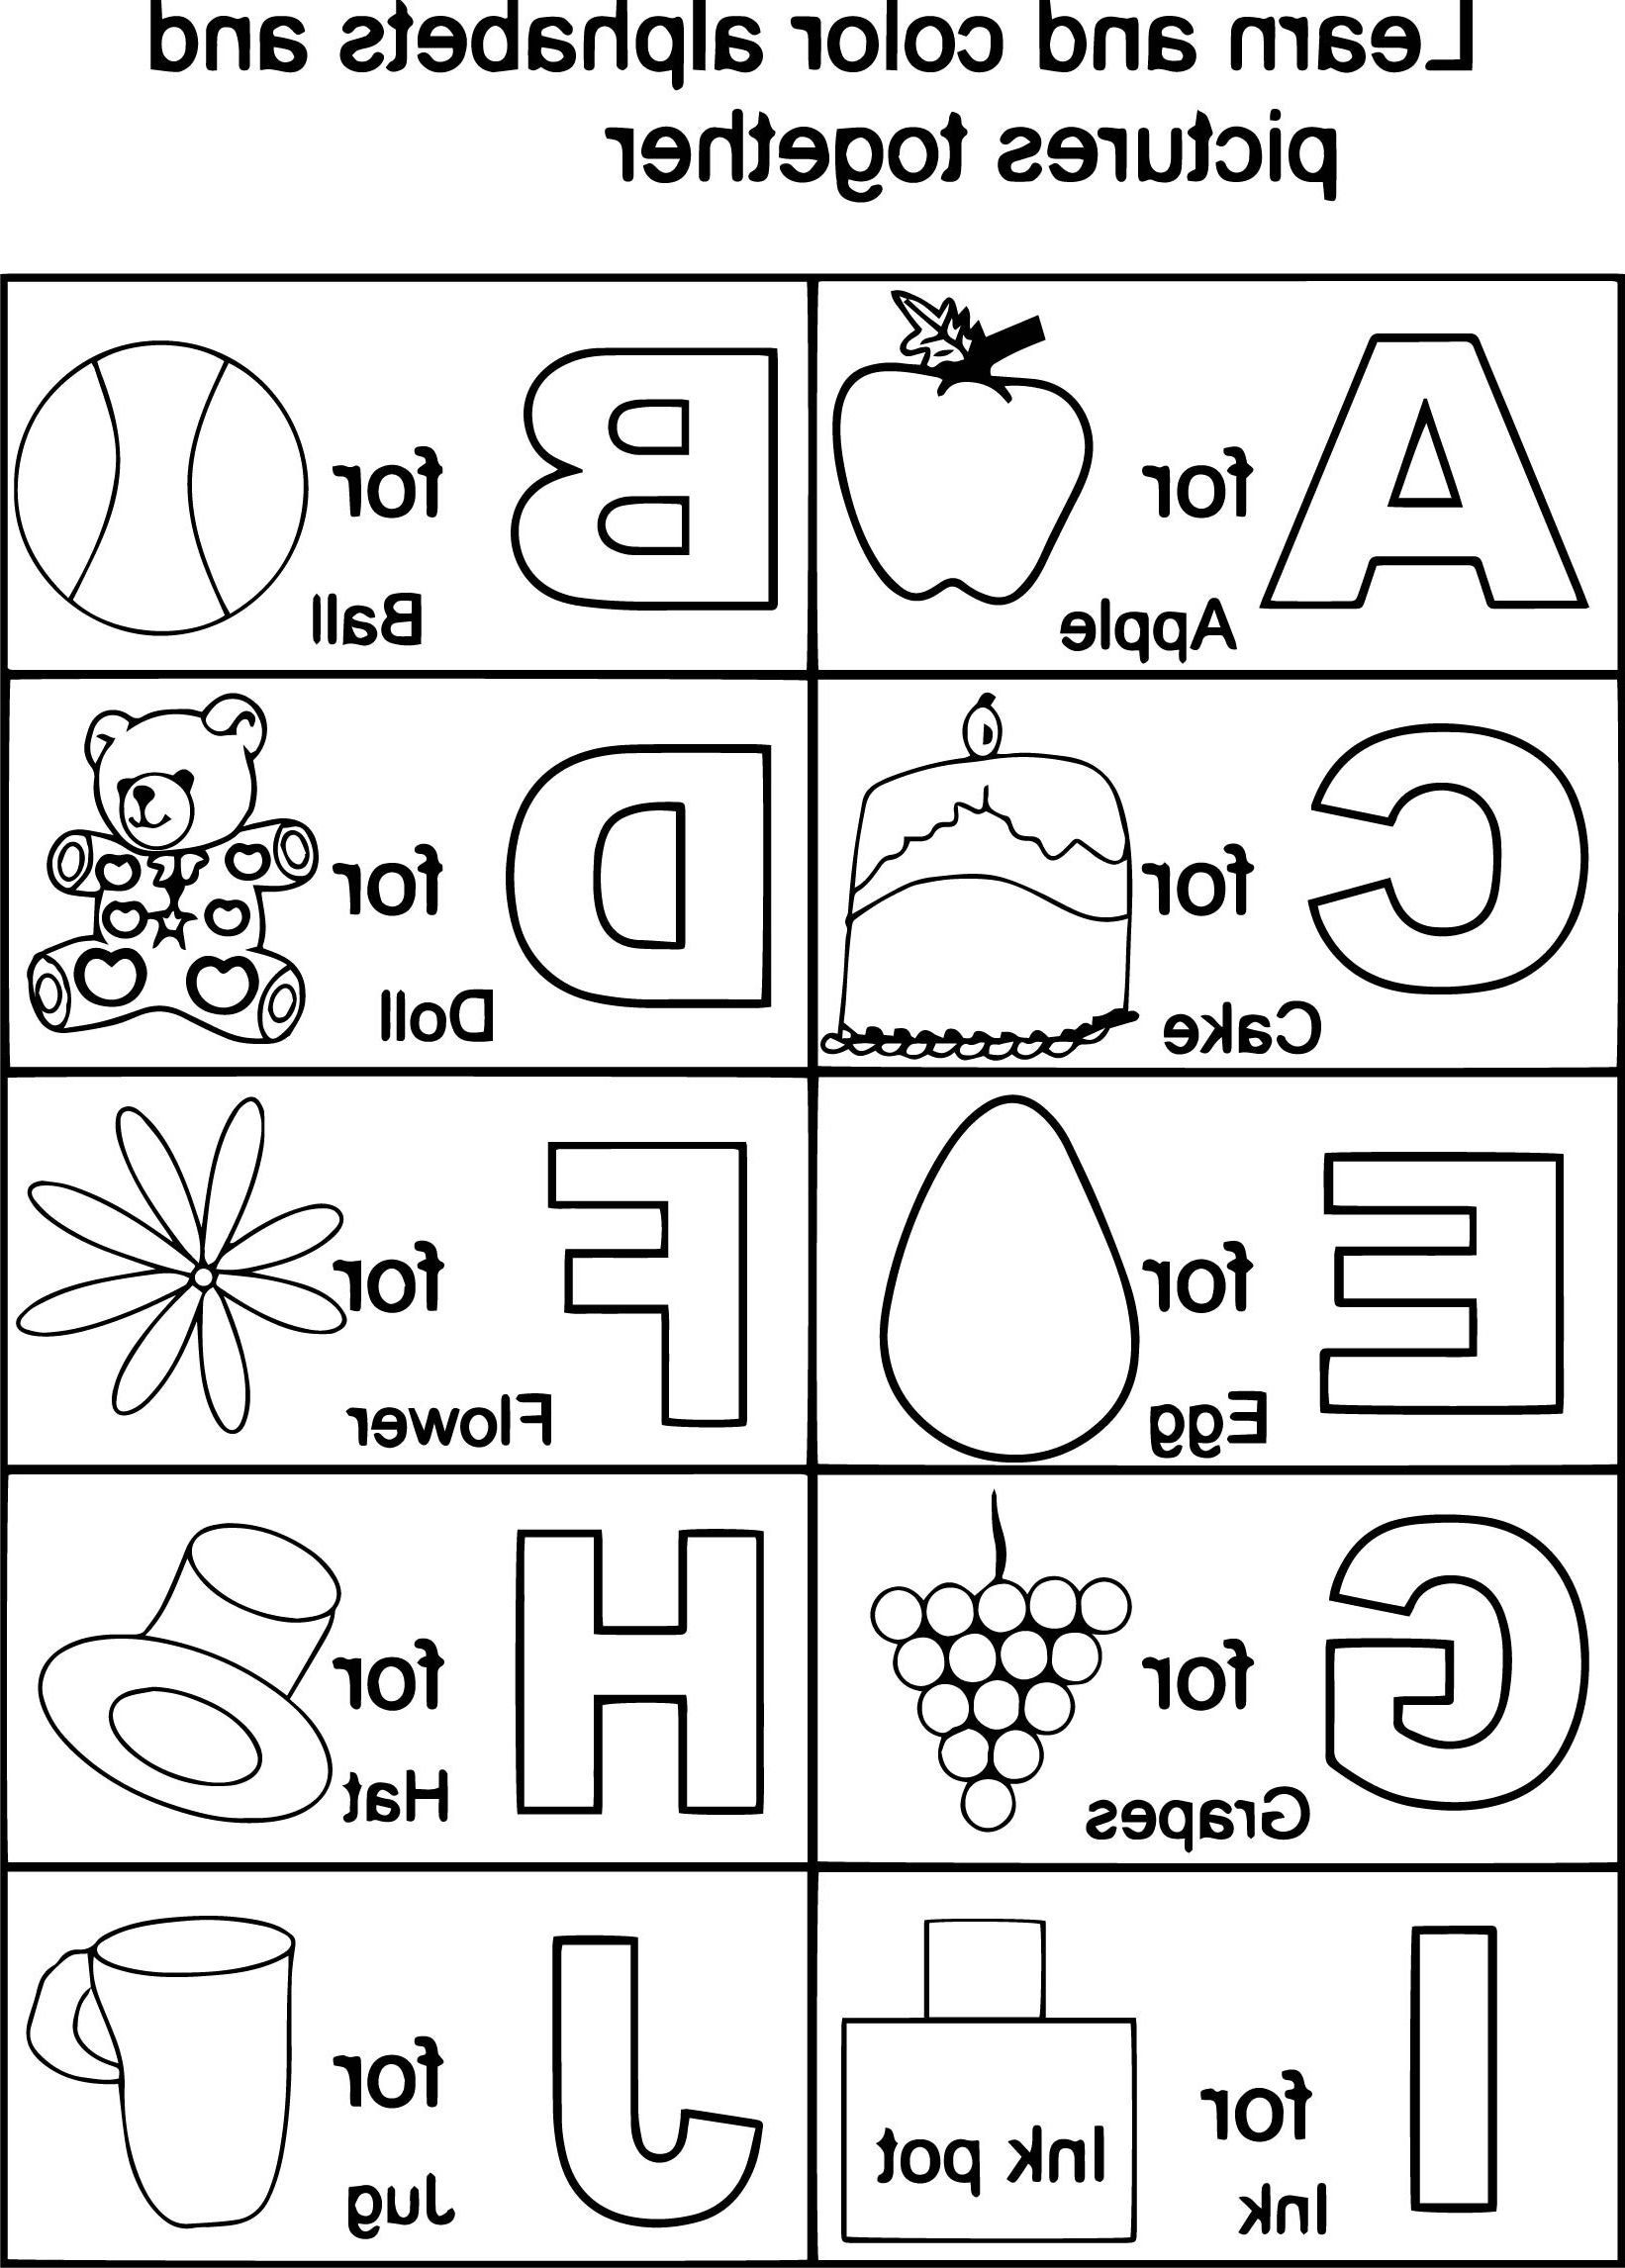 Free Printable Alphabet Coloring Pages | Coloring Page | Alphabet - Free Printable Alphabet Coloring Pages